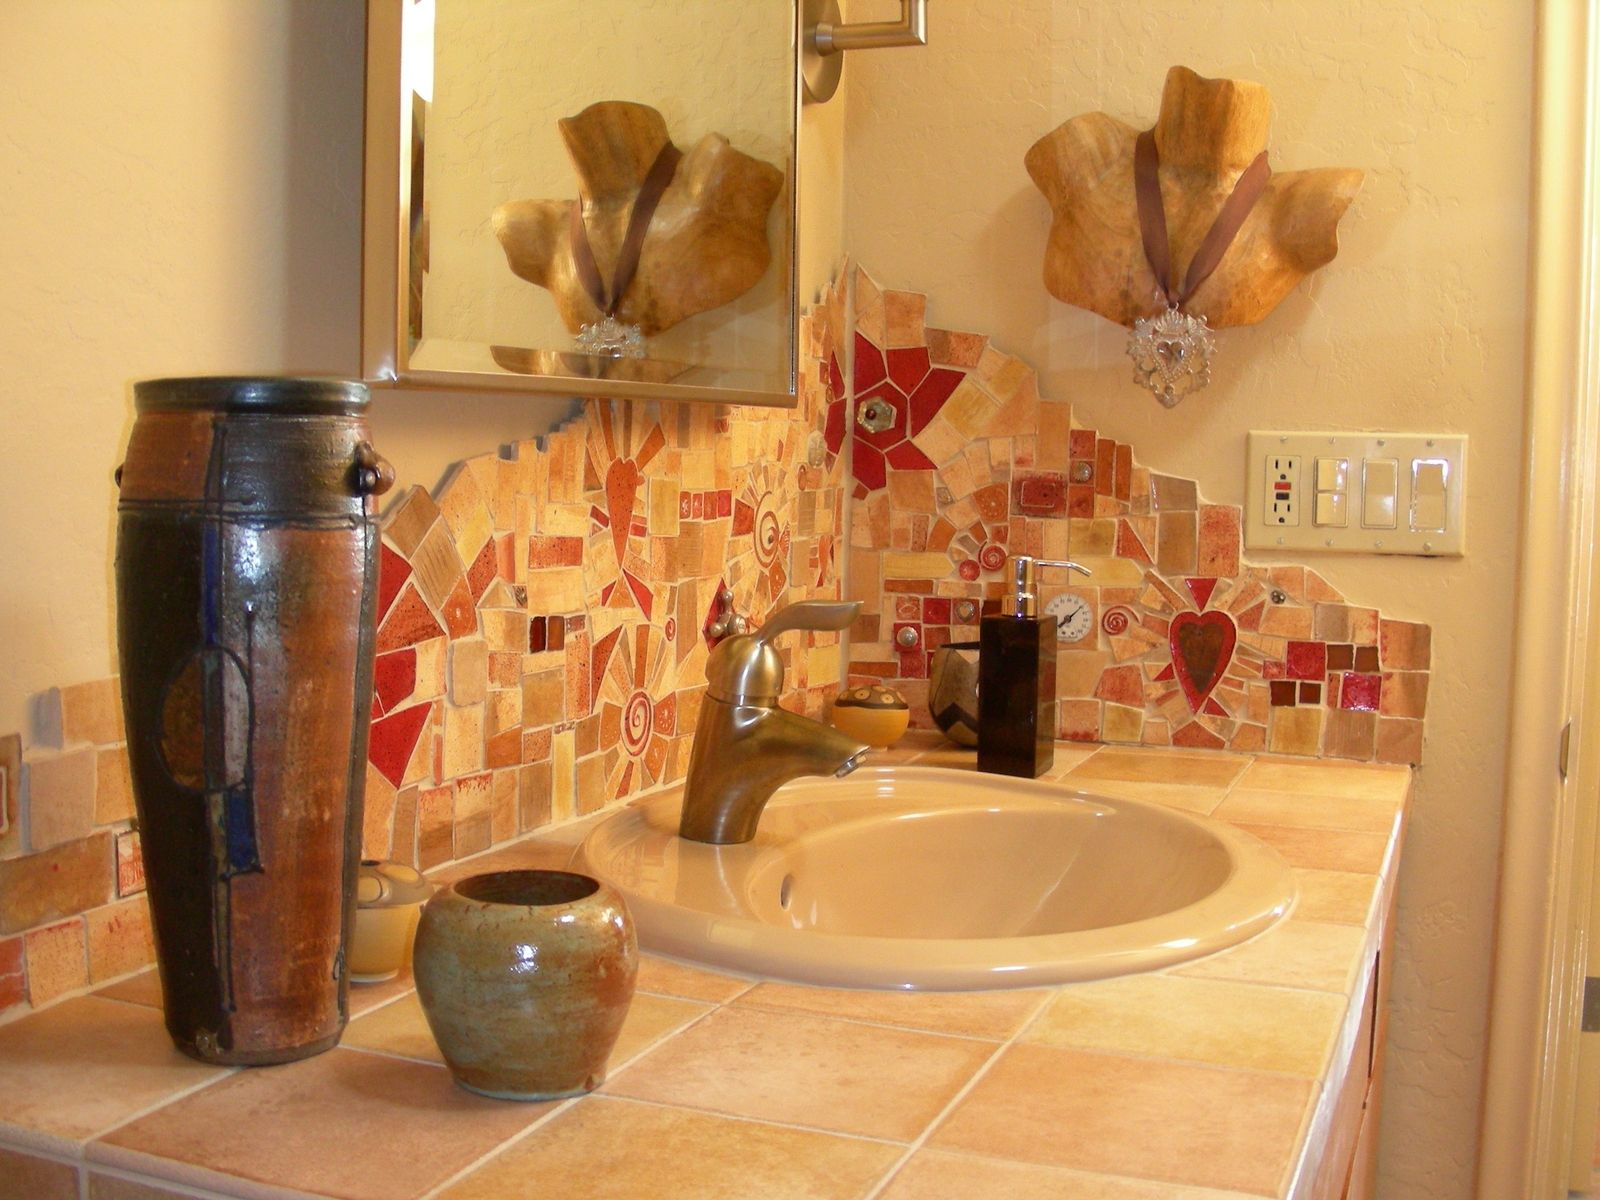 Custom made hand made tile mosaic bathroom backsplash by for Mosaic bathroom designs